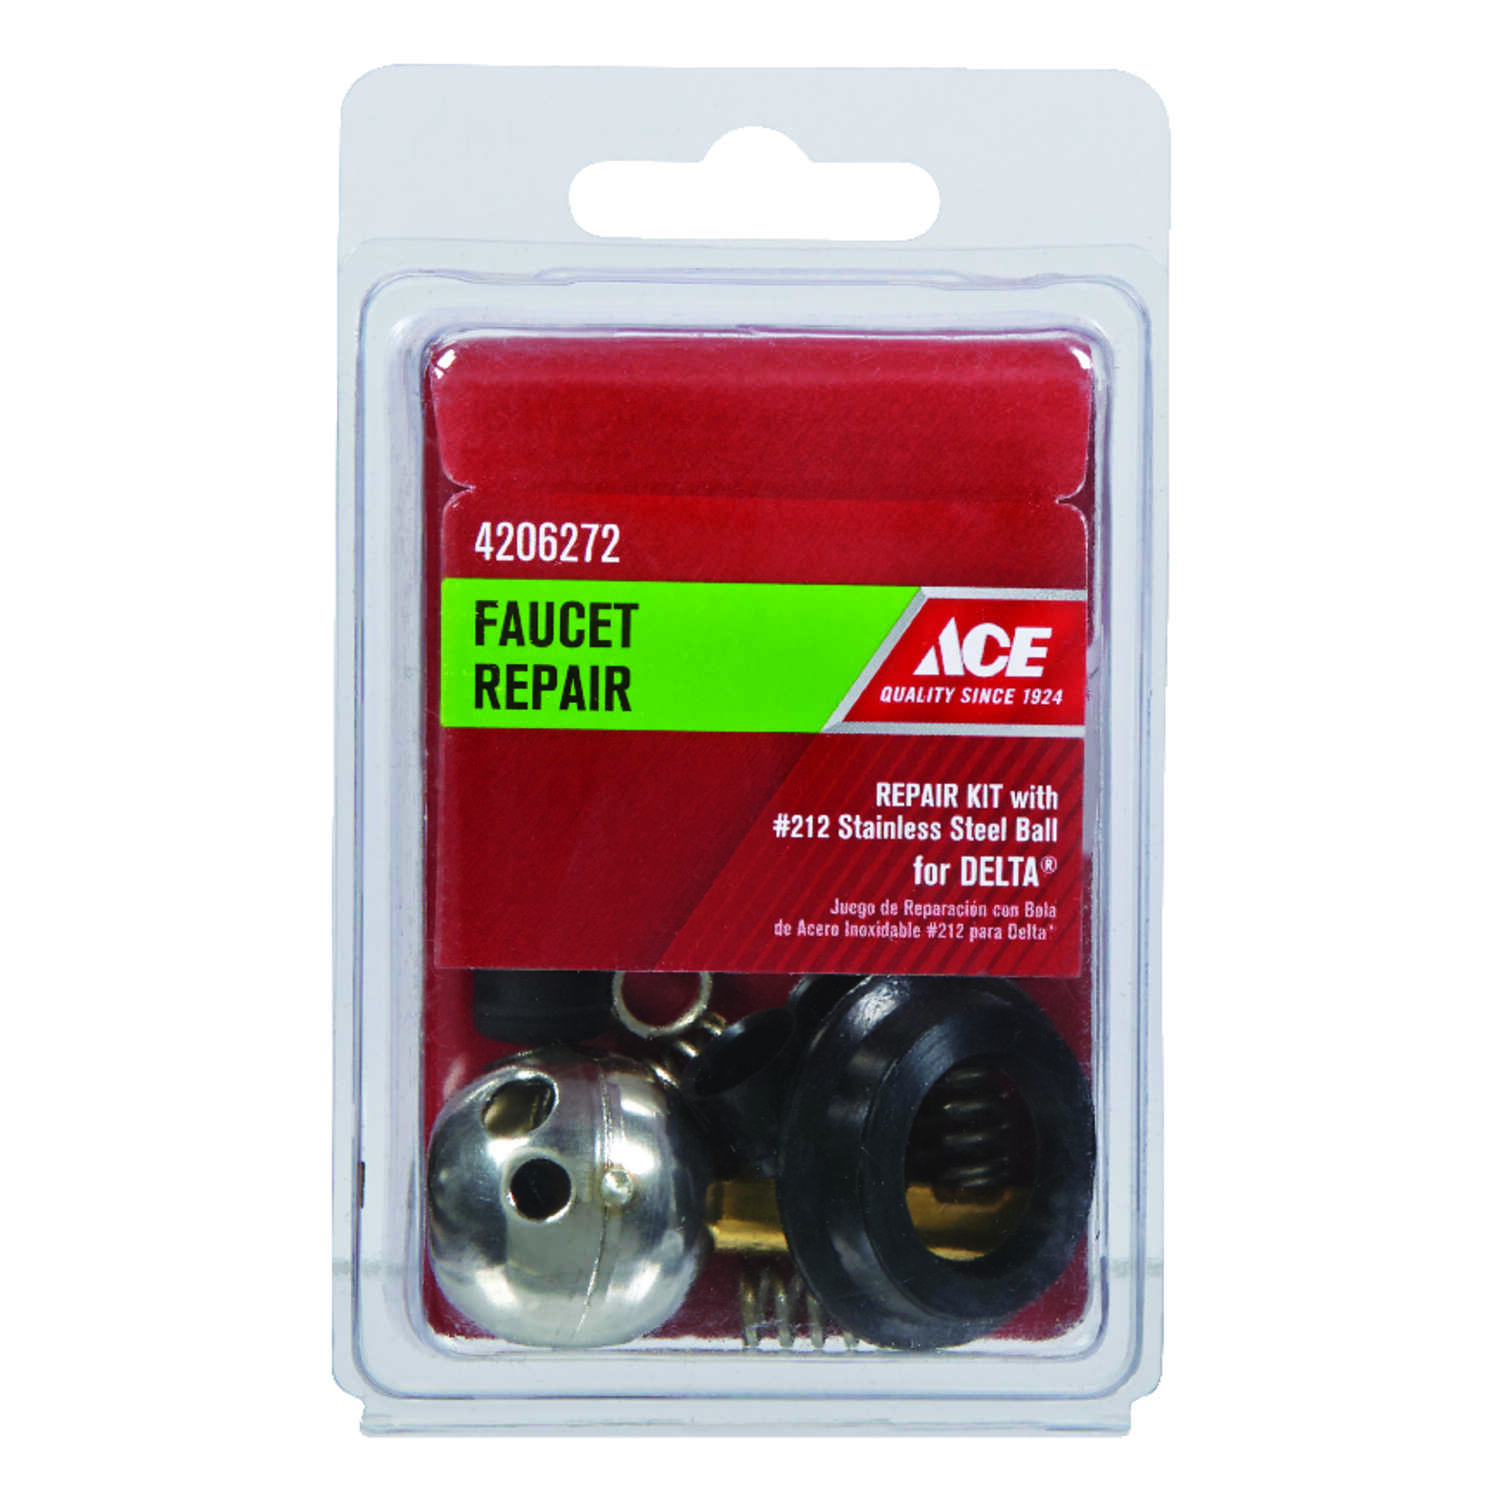 Ace Stainless Steel Faucet Repair Kit Ace Hardware